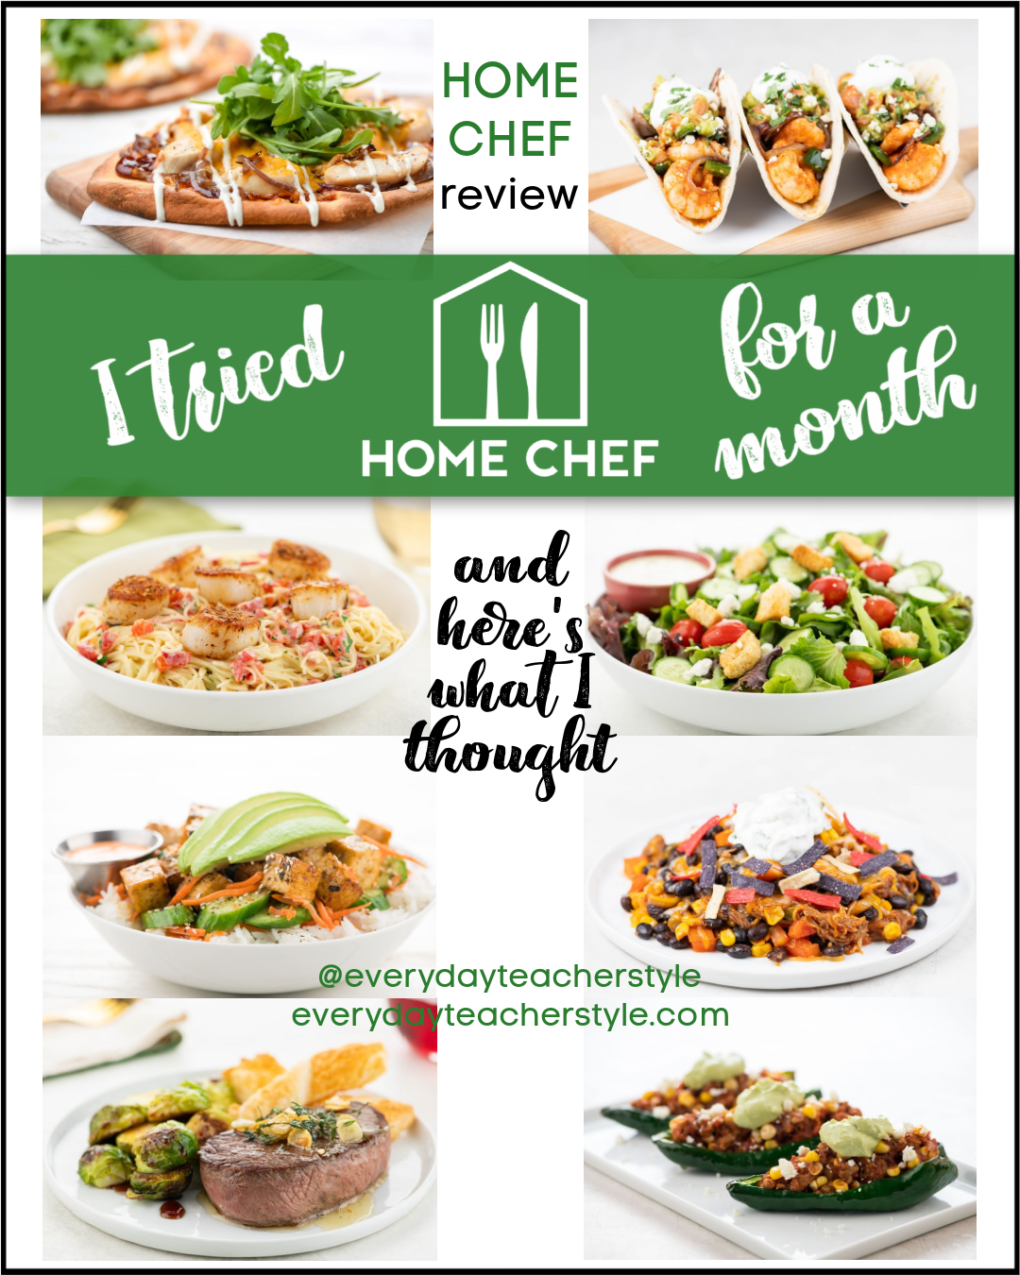 Everyday Teacher Style Home Chef Review Blog Post Image